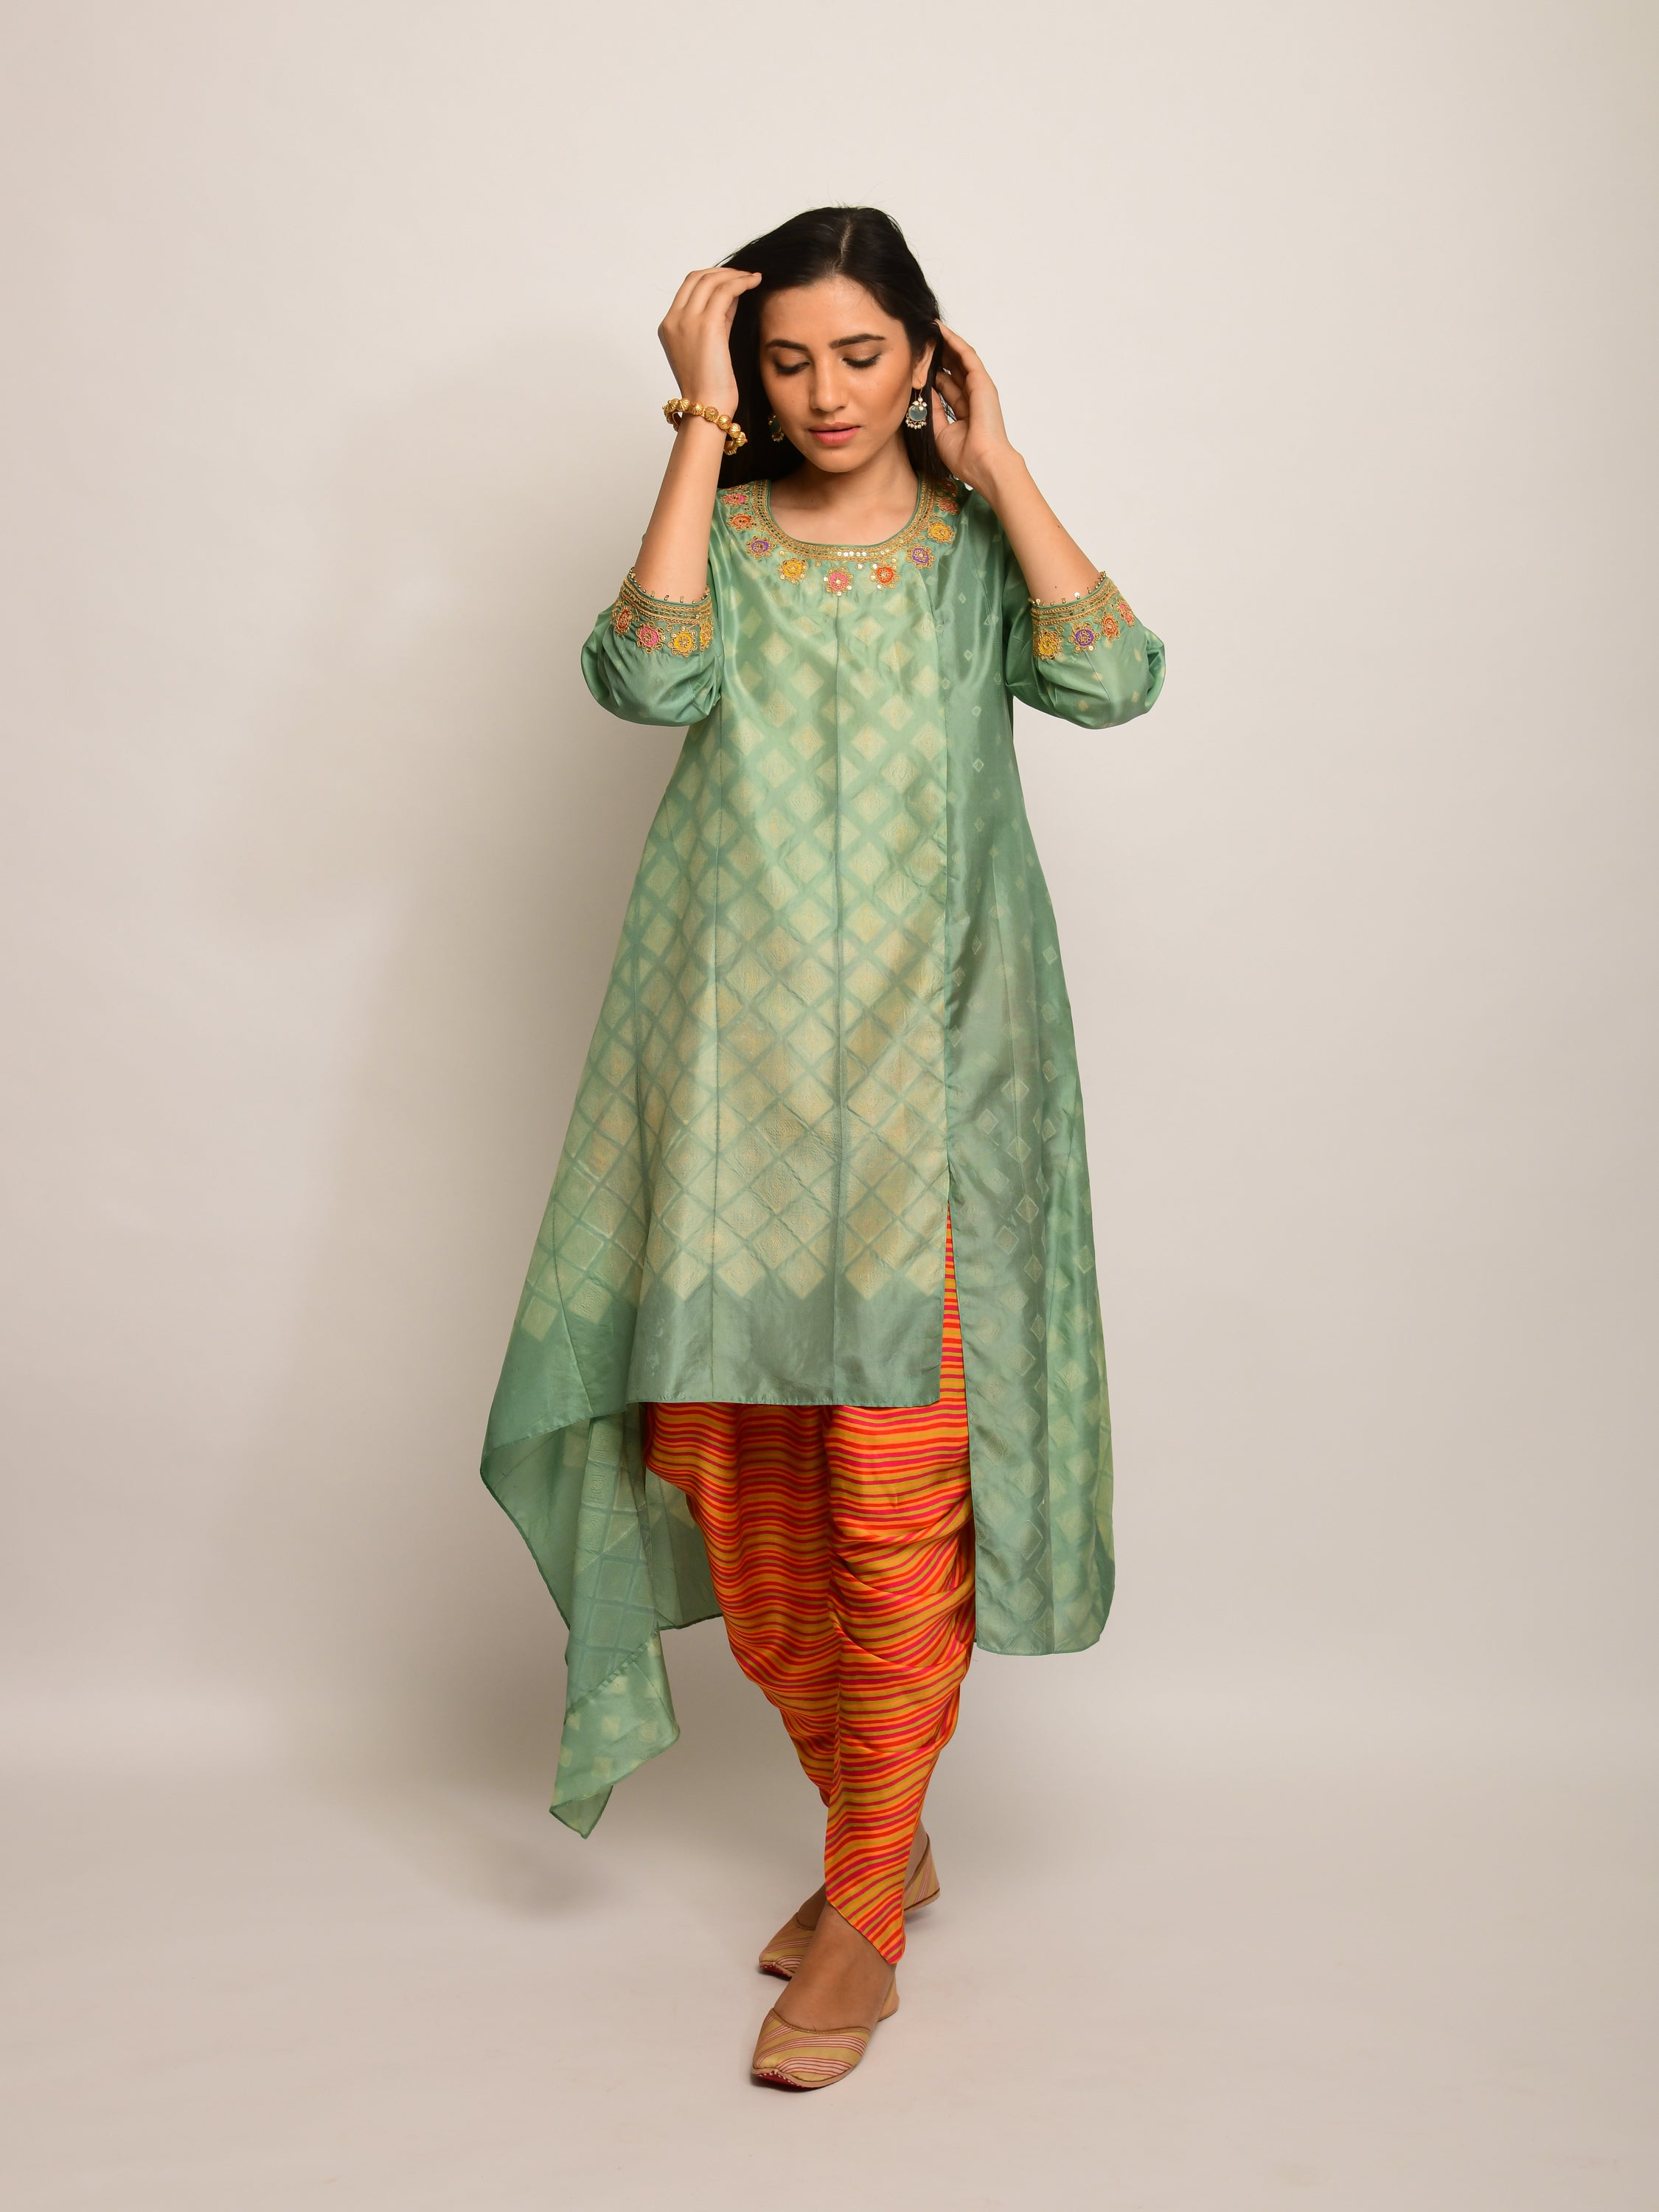 PATANG EMBROIDED SHIBORI OLIVE/BEIGE  ASYMMETRICAL TUNIC